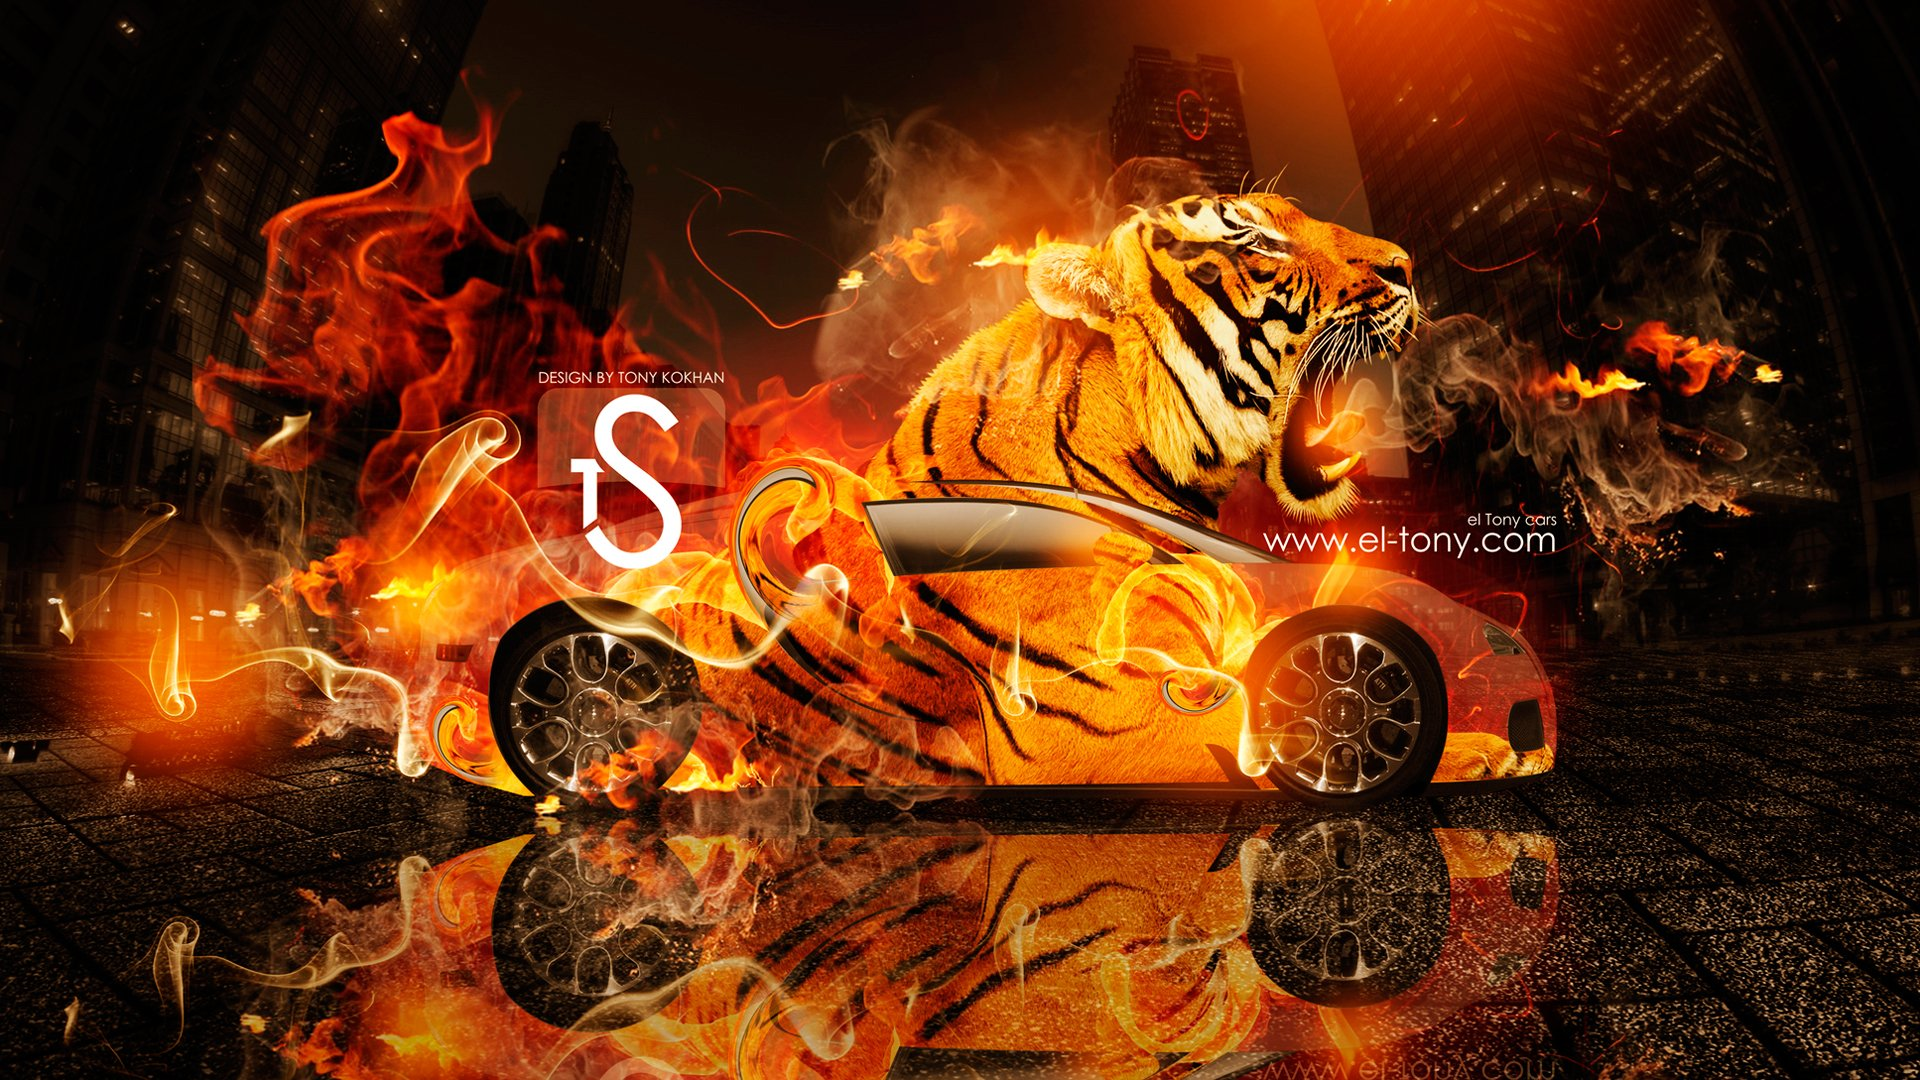 Power Speed Fire Car 2013 HD